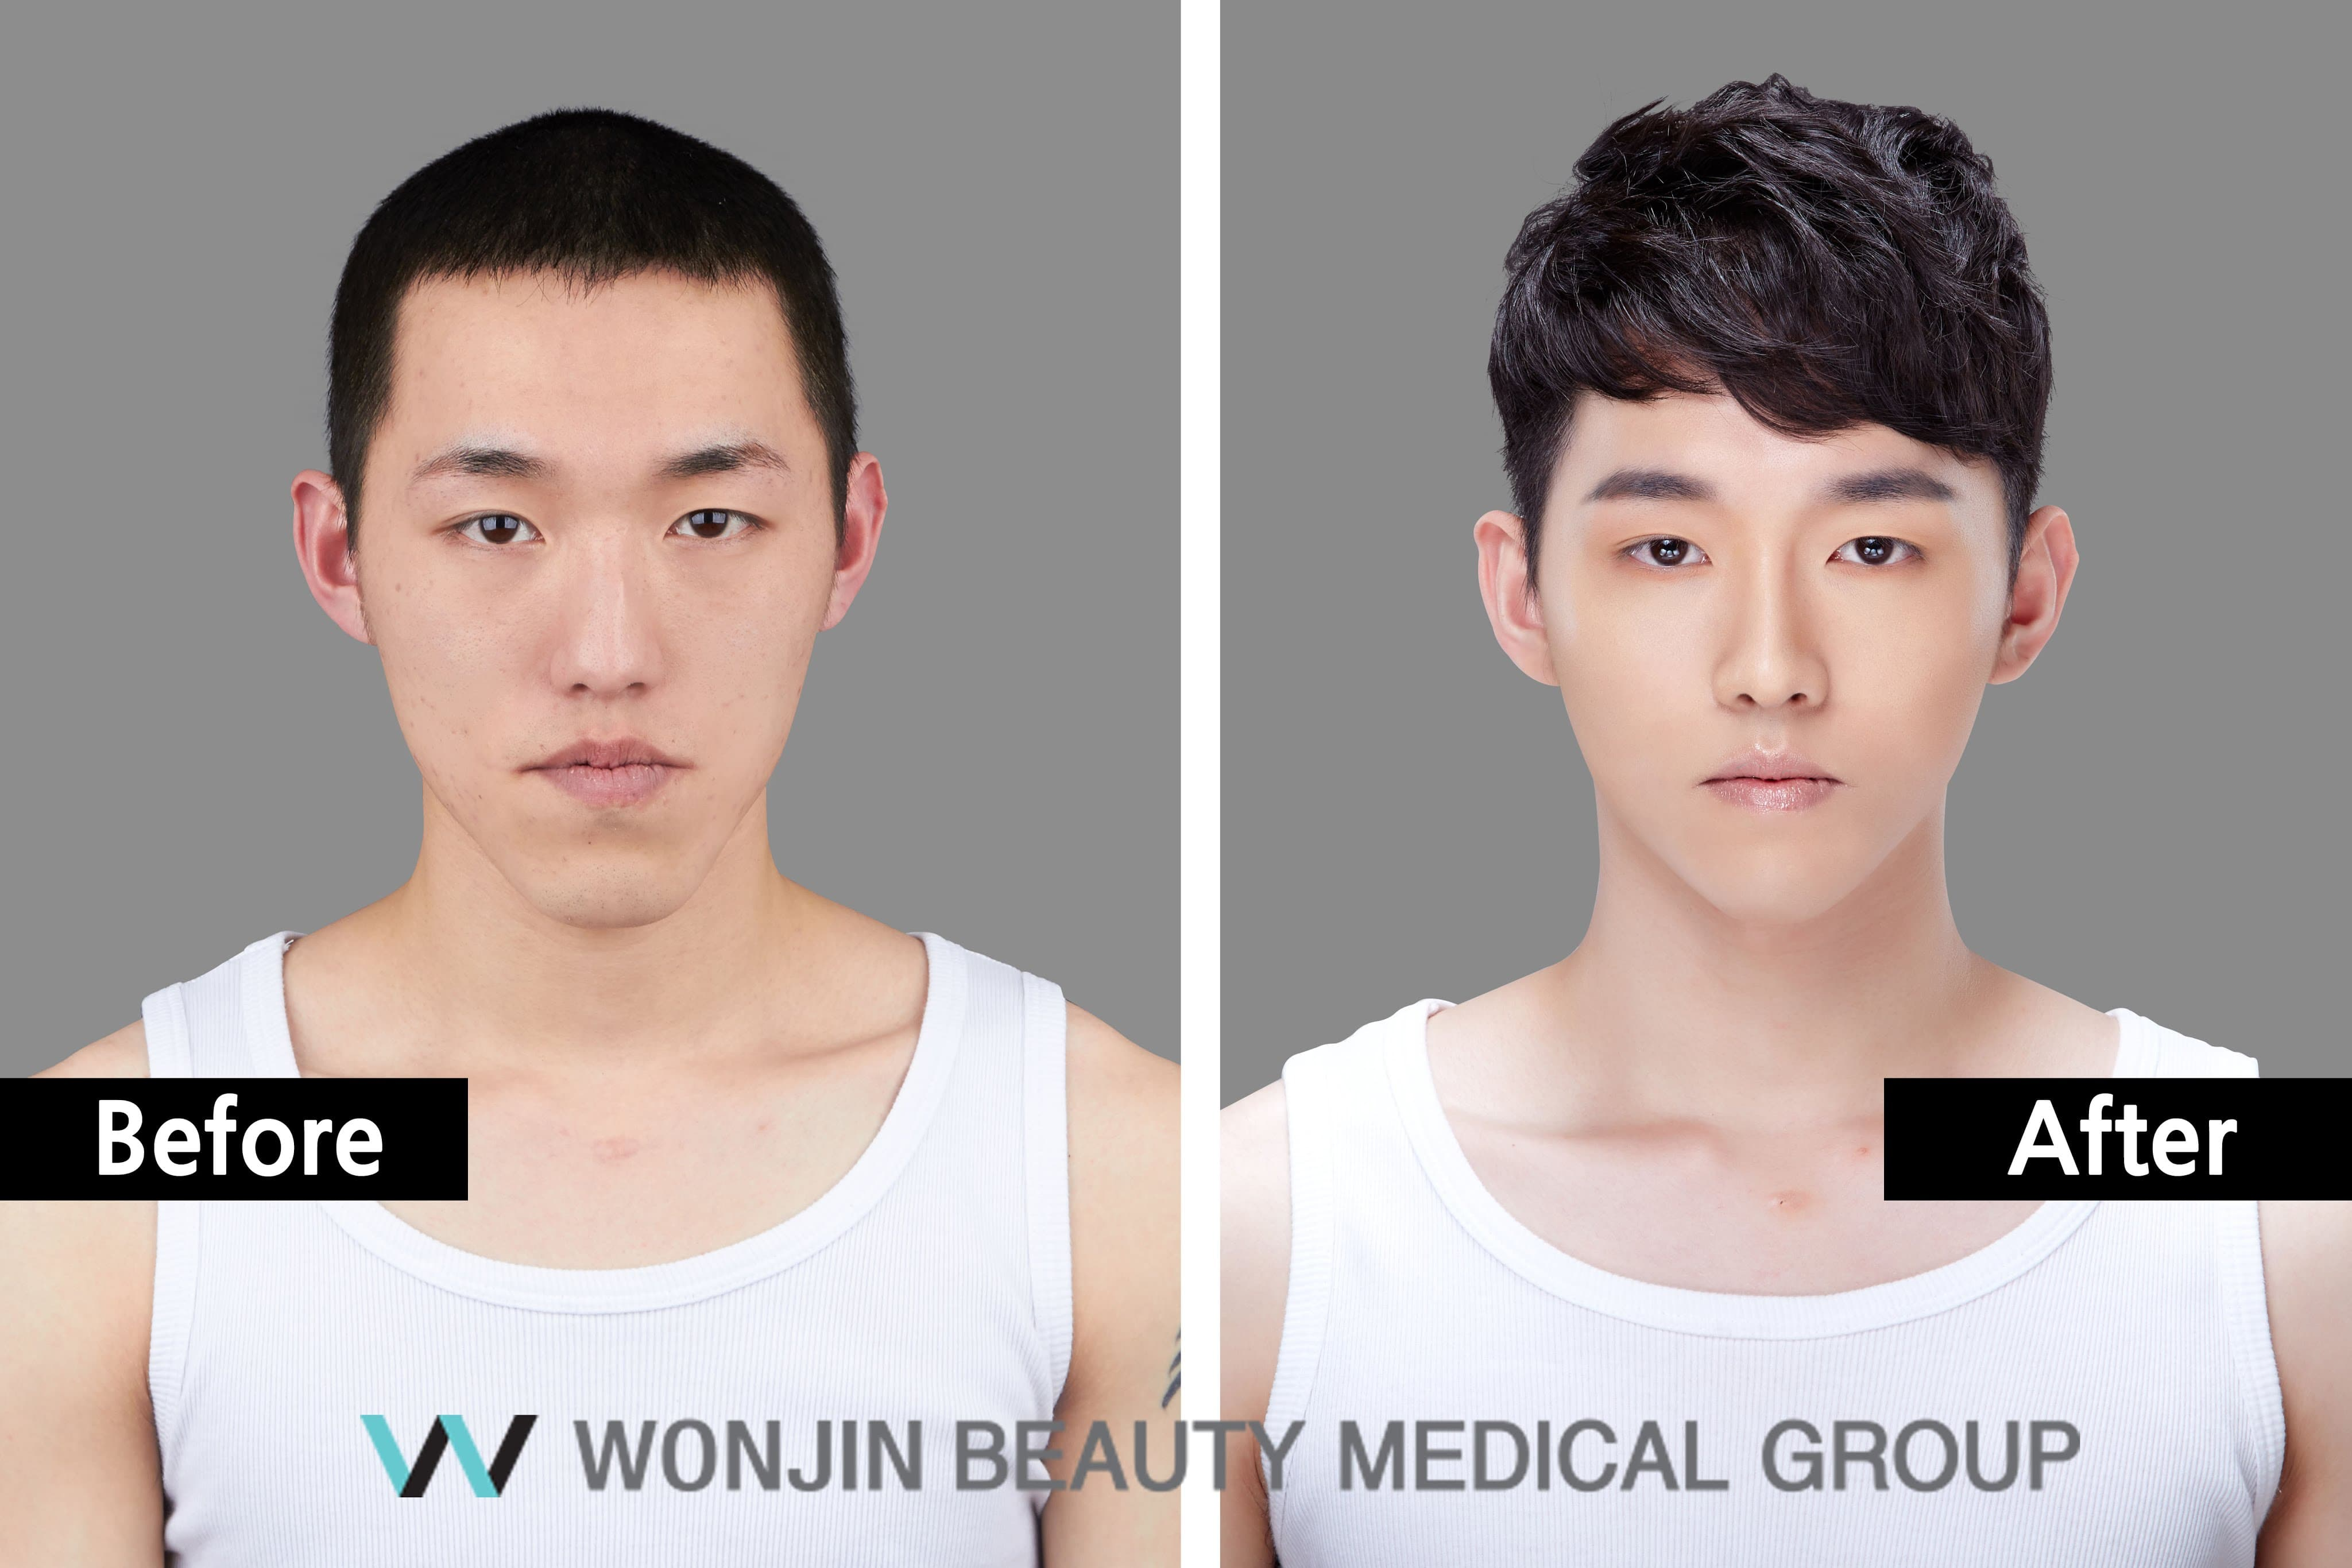 Korean Male Before And After Plastic Surgery 1